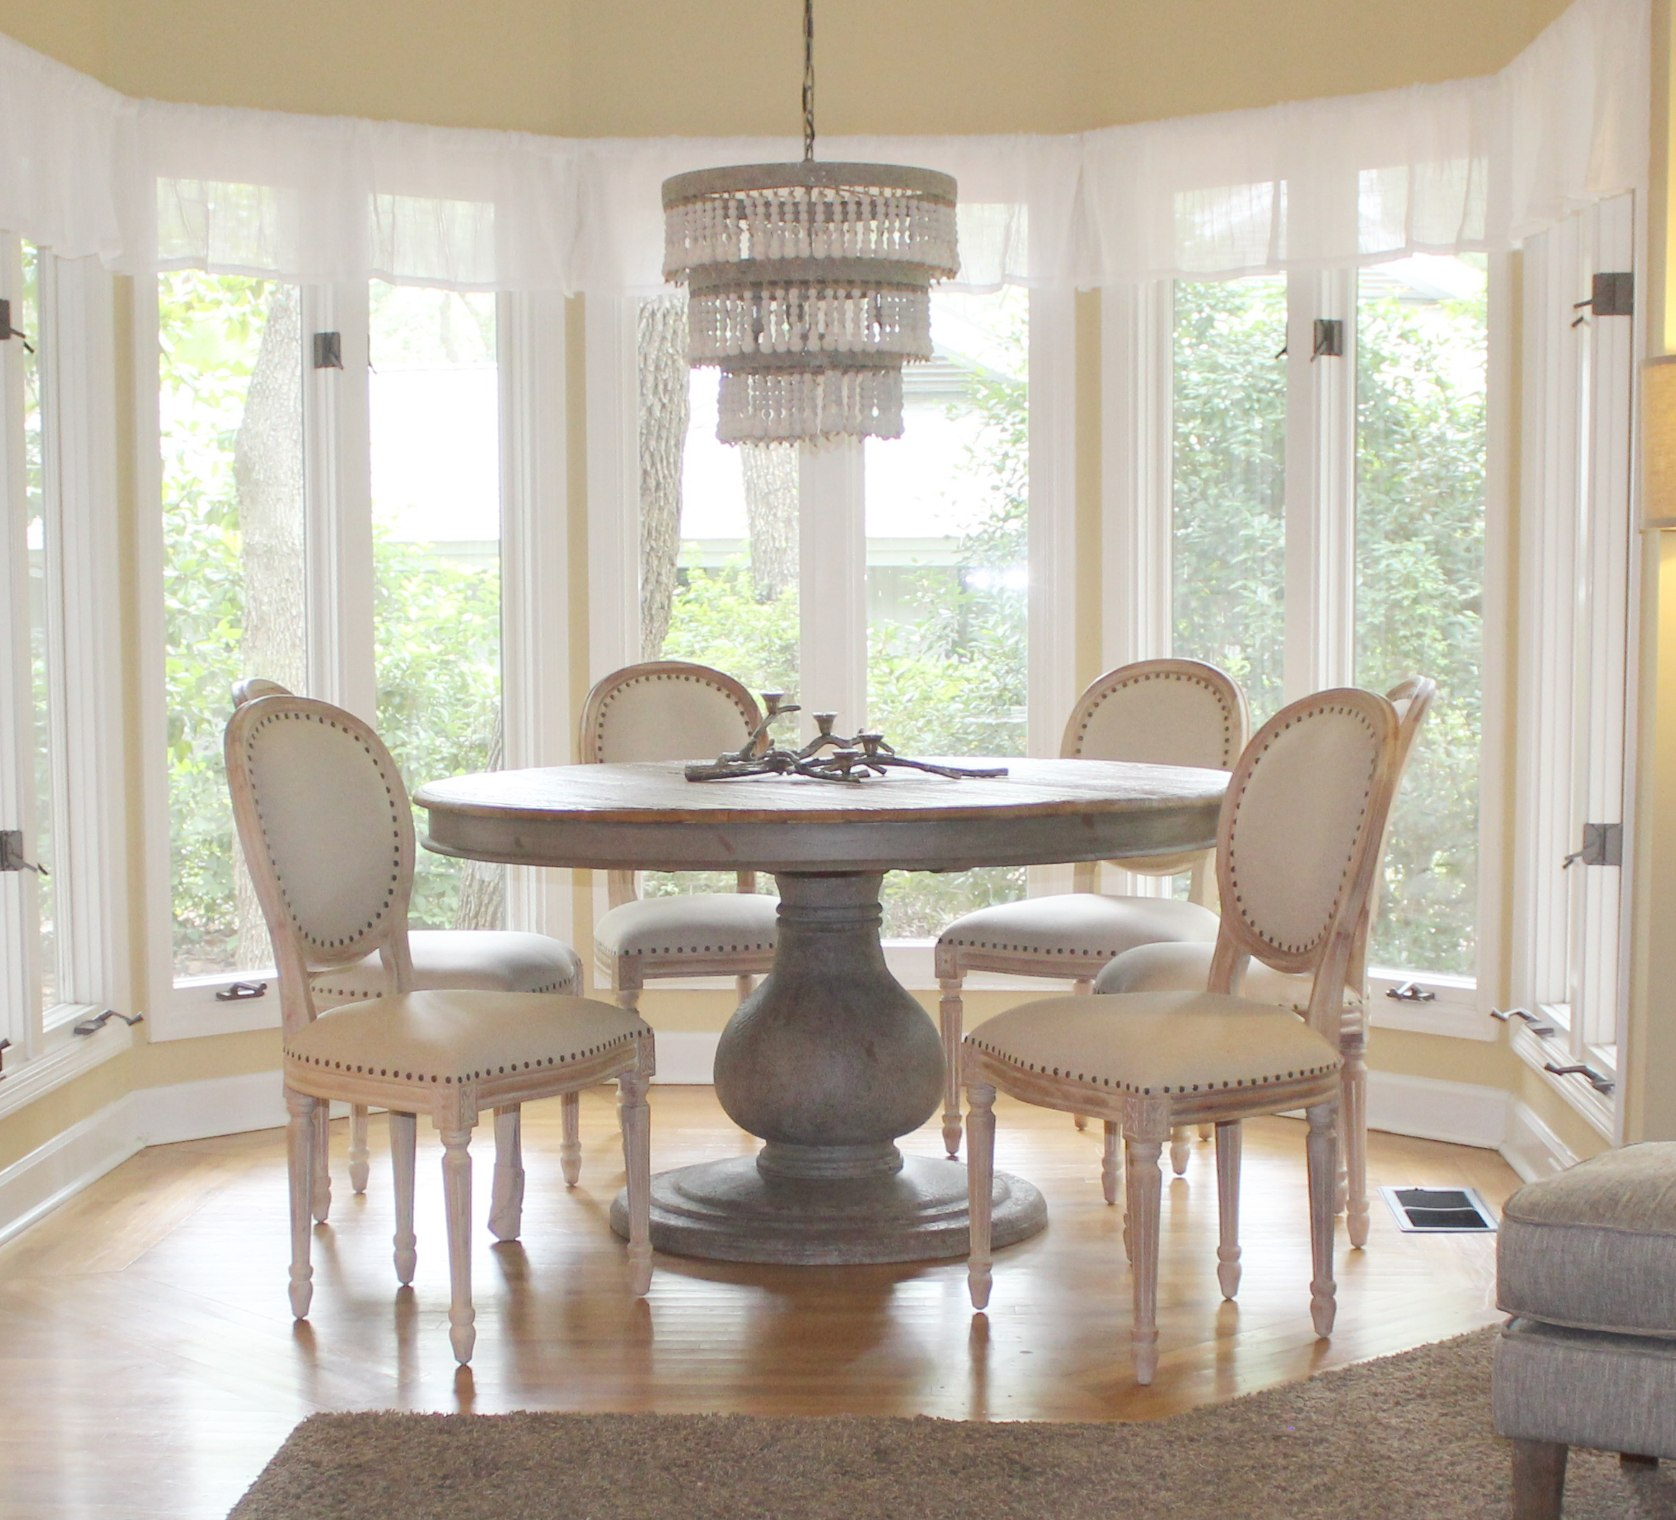 197a97983125e Set of Six Dining Room Aged White Wash Chairs with Fabric Seat Wholesale  Priced